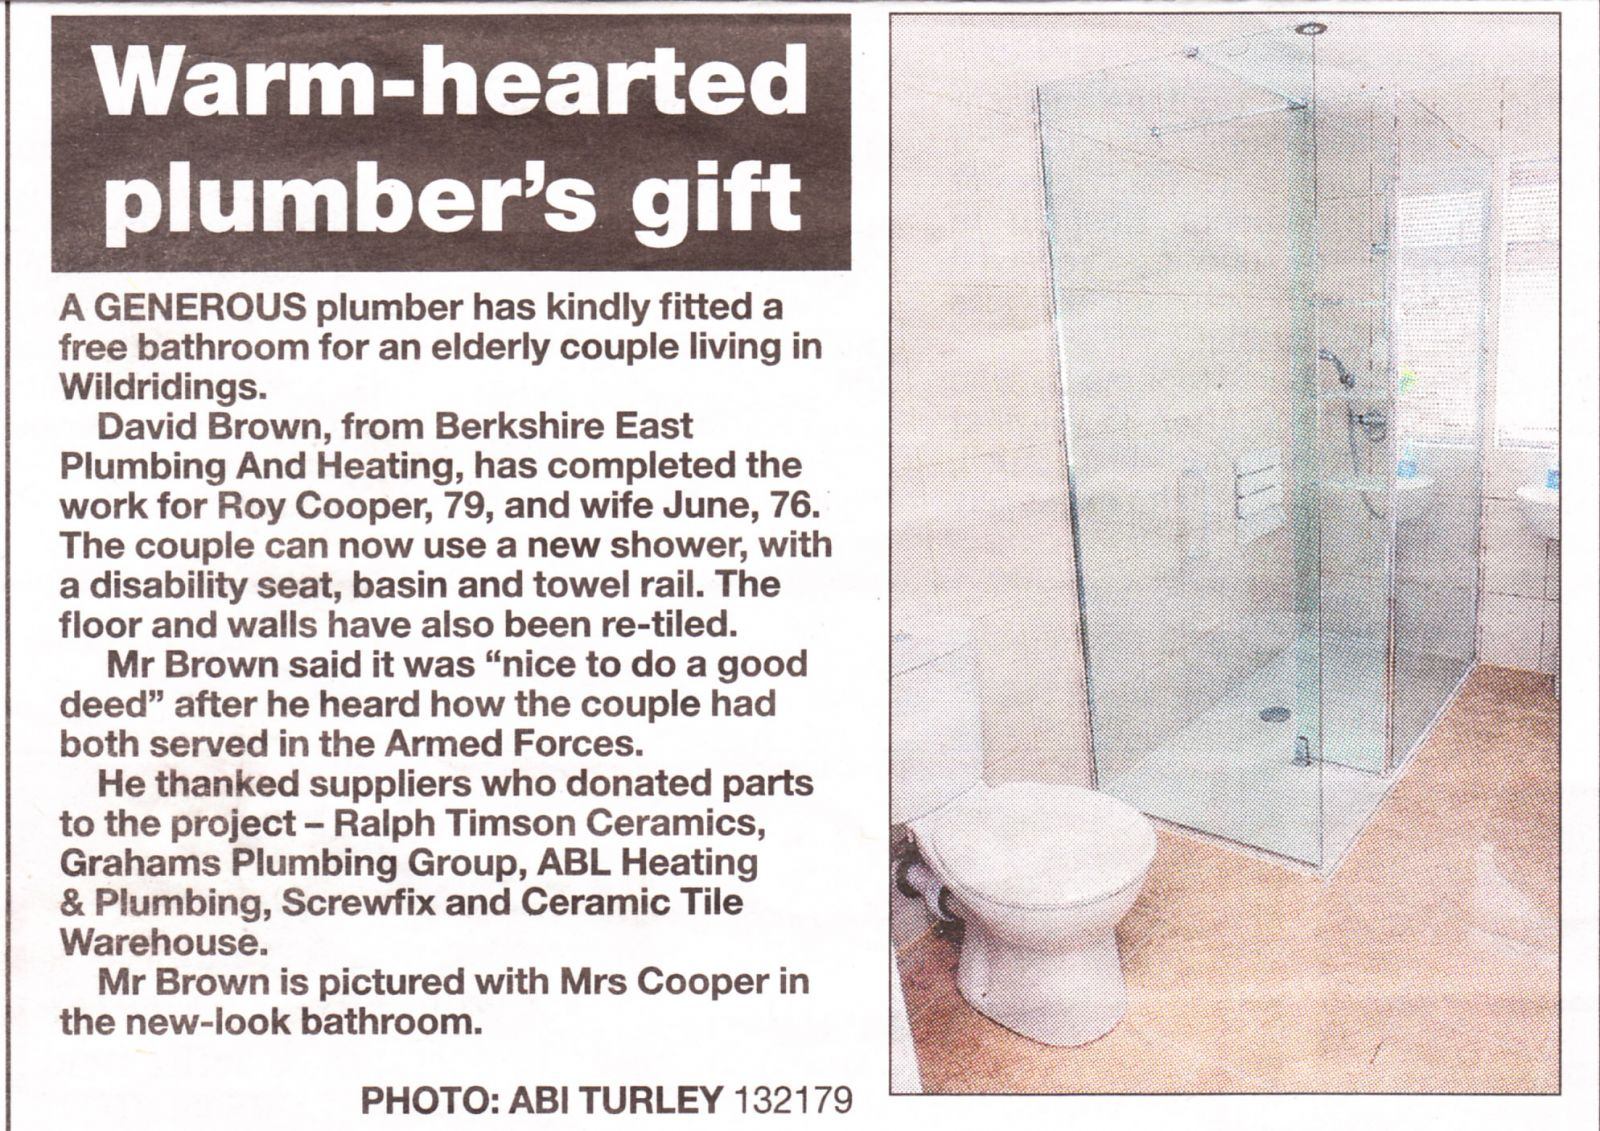 Warm-hearted plumber's gift